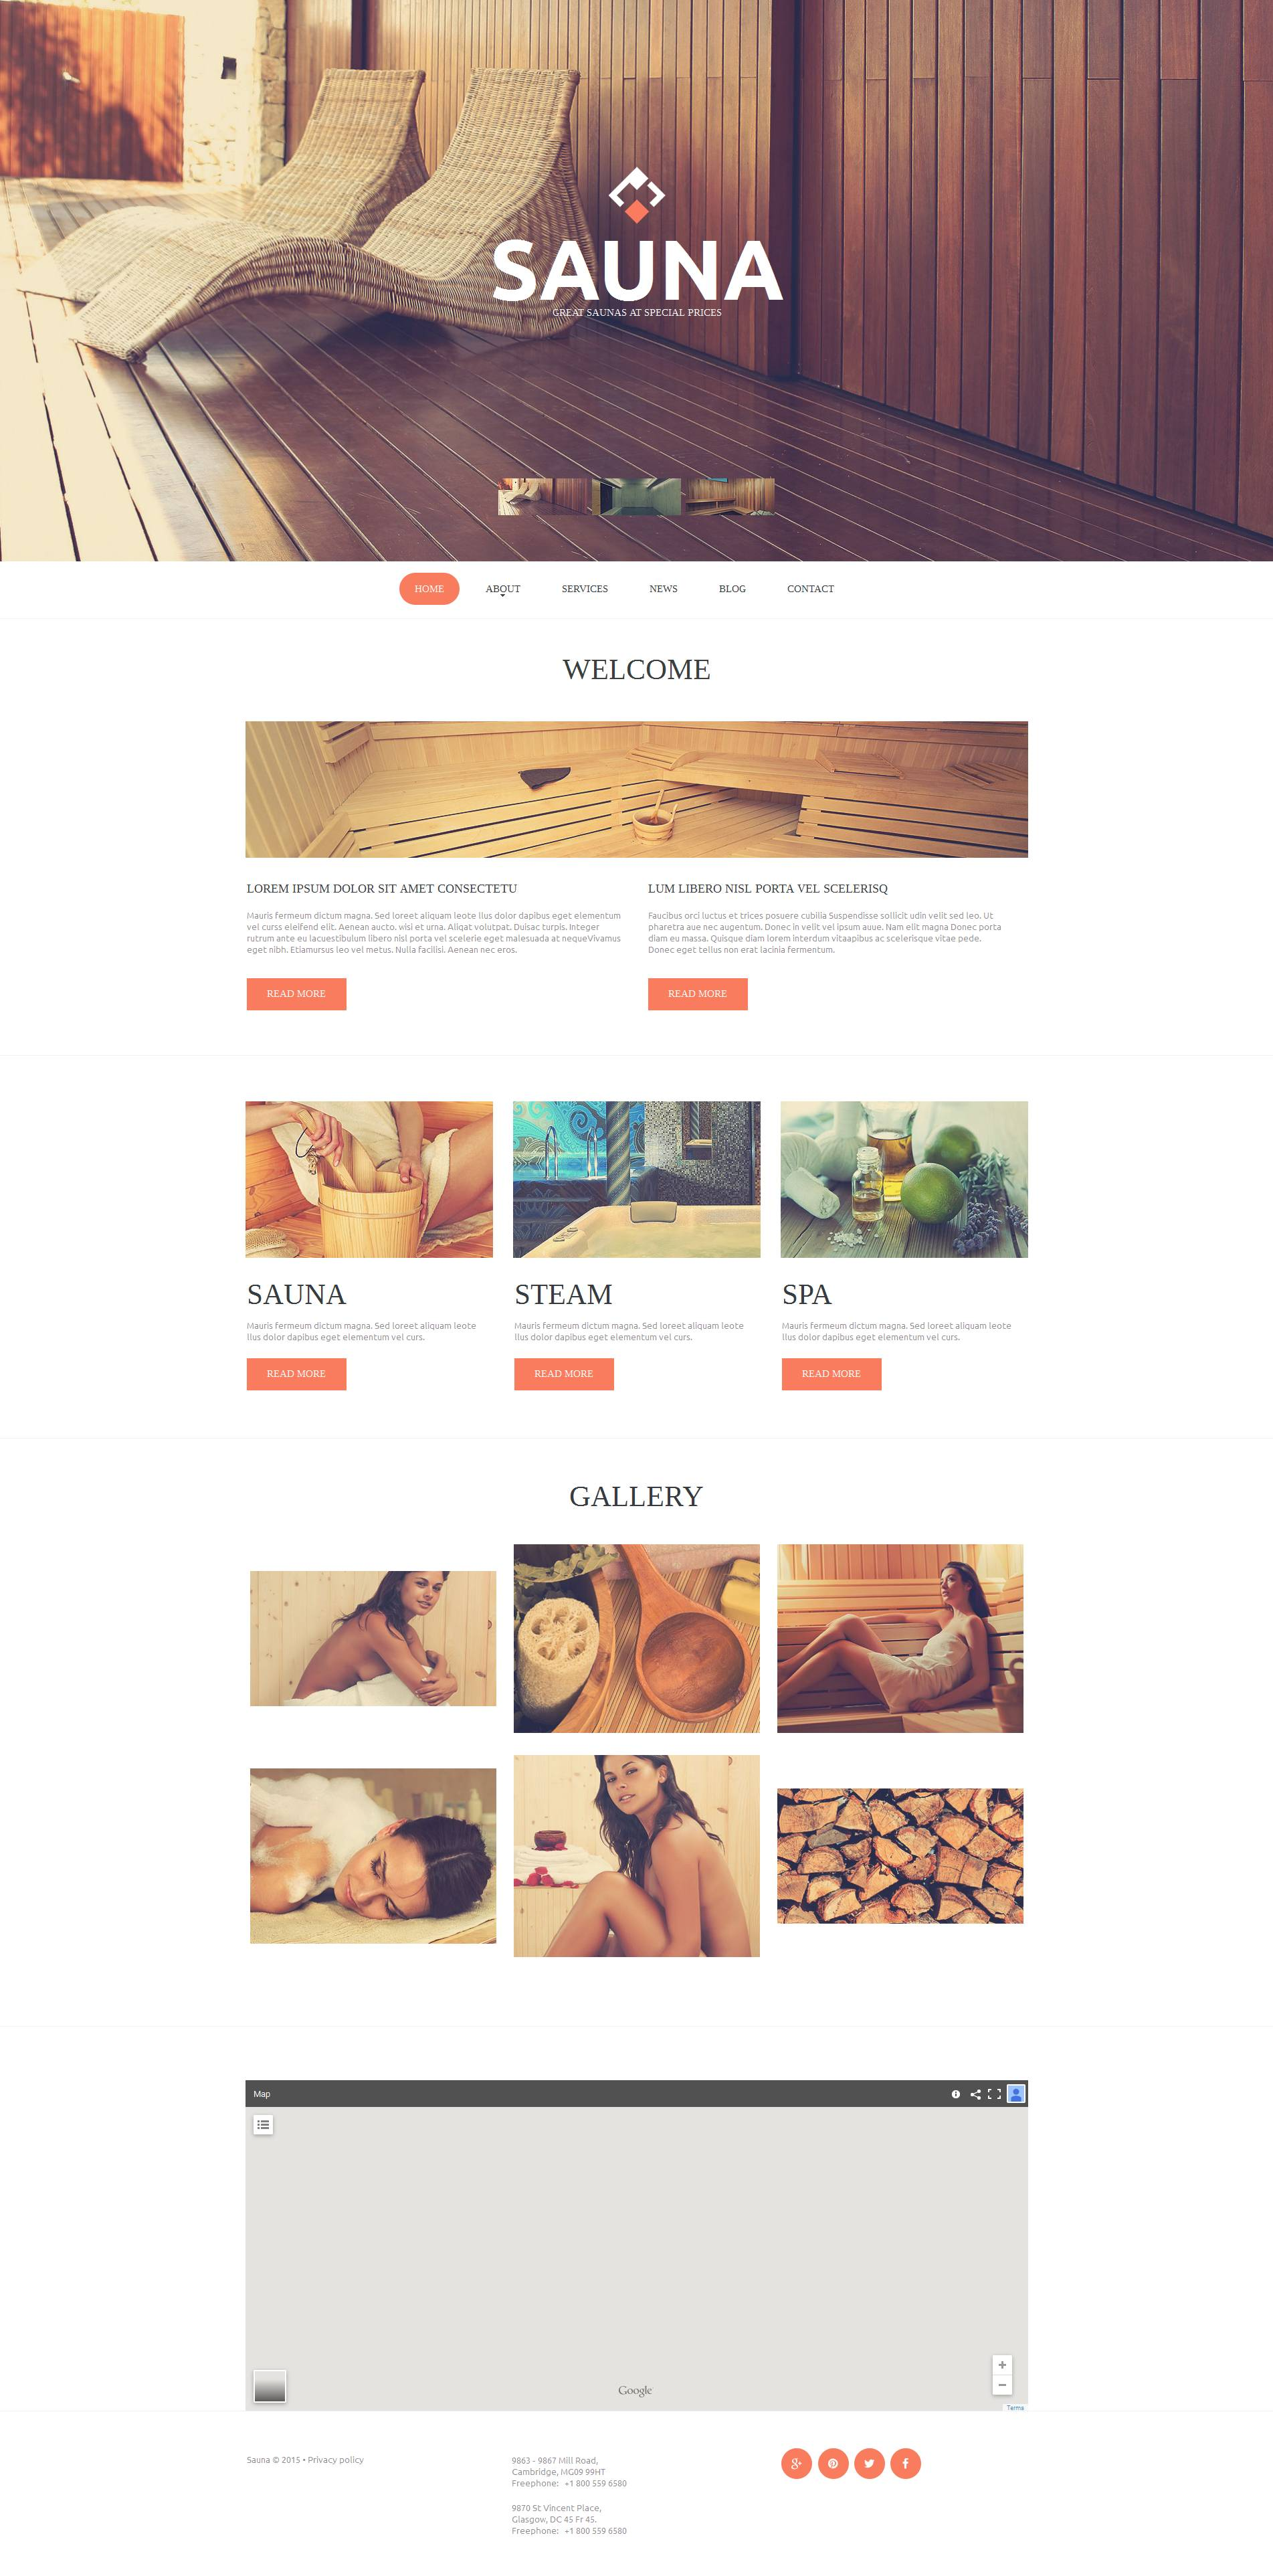 The Sauna Lux Store Moto CMS HTML Design 53514, one of the best Moto CMS HTML templates of its kind (beauty), also known as sauna lux store Moto CMS HTML template, retail Moto CMS HTML template, wholesale Moto CMS HTML template, price Moto CMS HTML template, sale Moto CMS HTML template, sell Moto CMS HTML template, heat Moto CMS HTML template, therapy Moto CMS HTML template, health Moto CMS HTML template, infrared and related with sauna lux store, retail, wholesale, price, sale, sell, heat, therapy, health, infrared, etc.